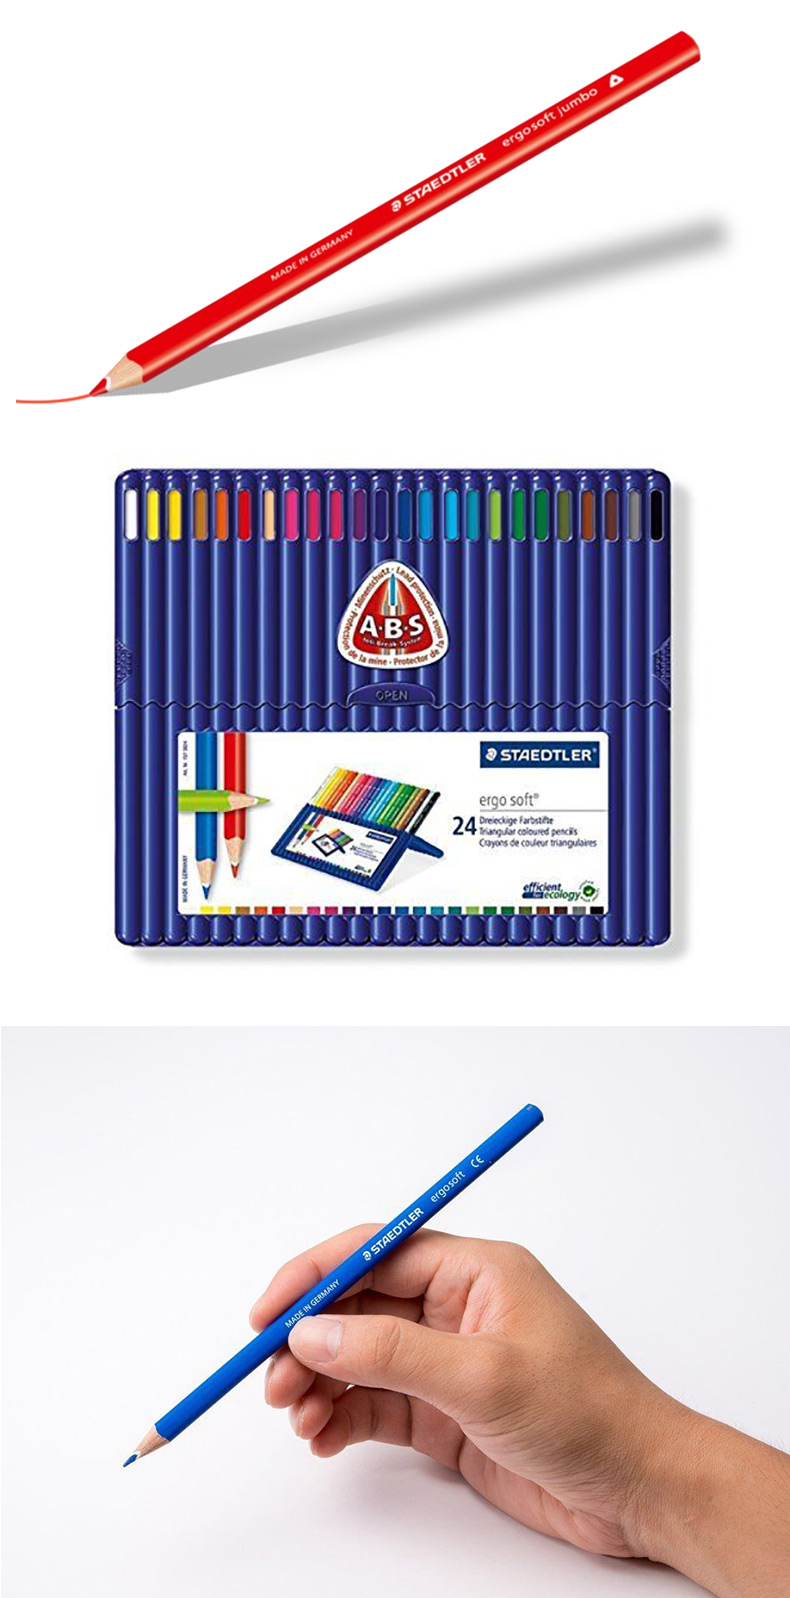 Fin Staedtler® Ergosoft Coloured Pencils, 24 Assorted Colours 764605 CD-35